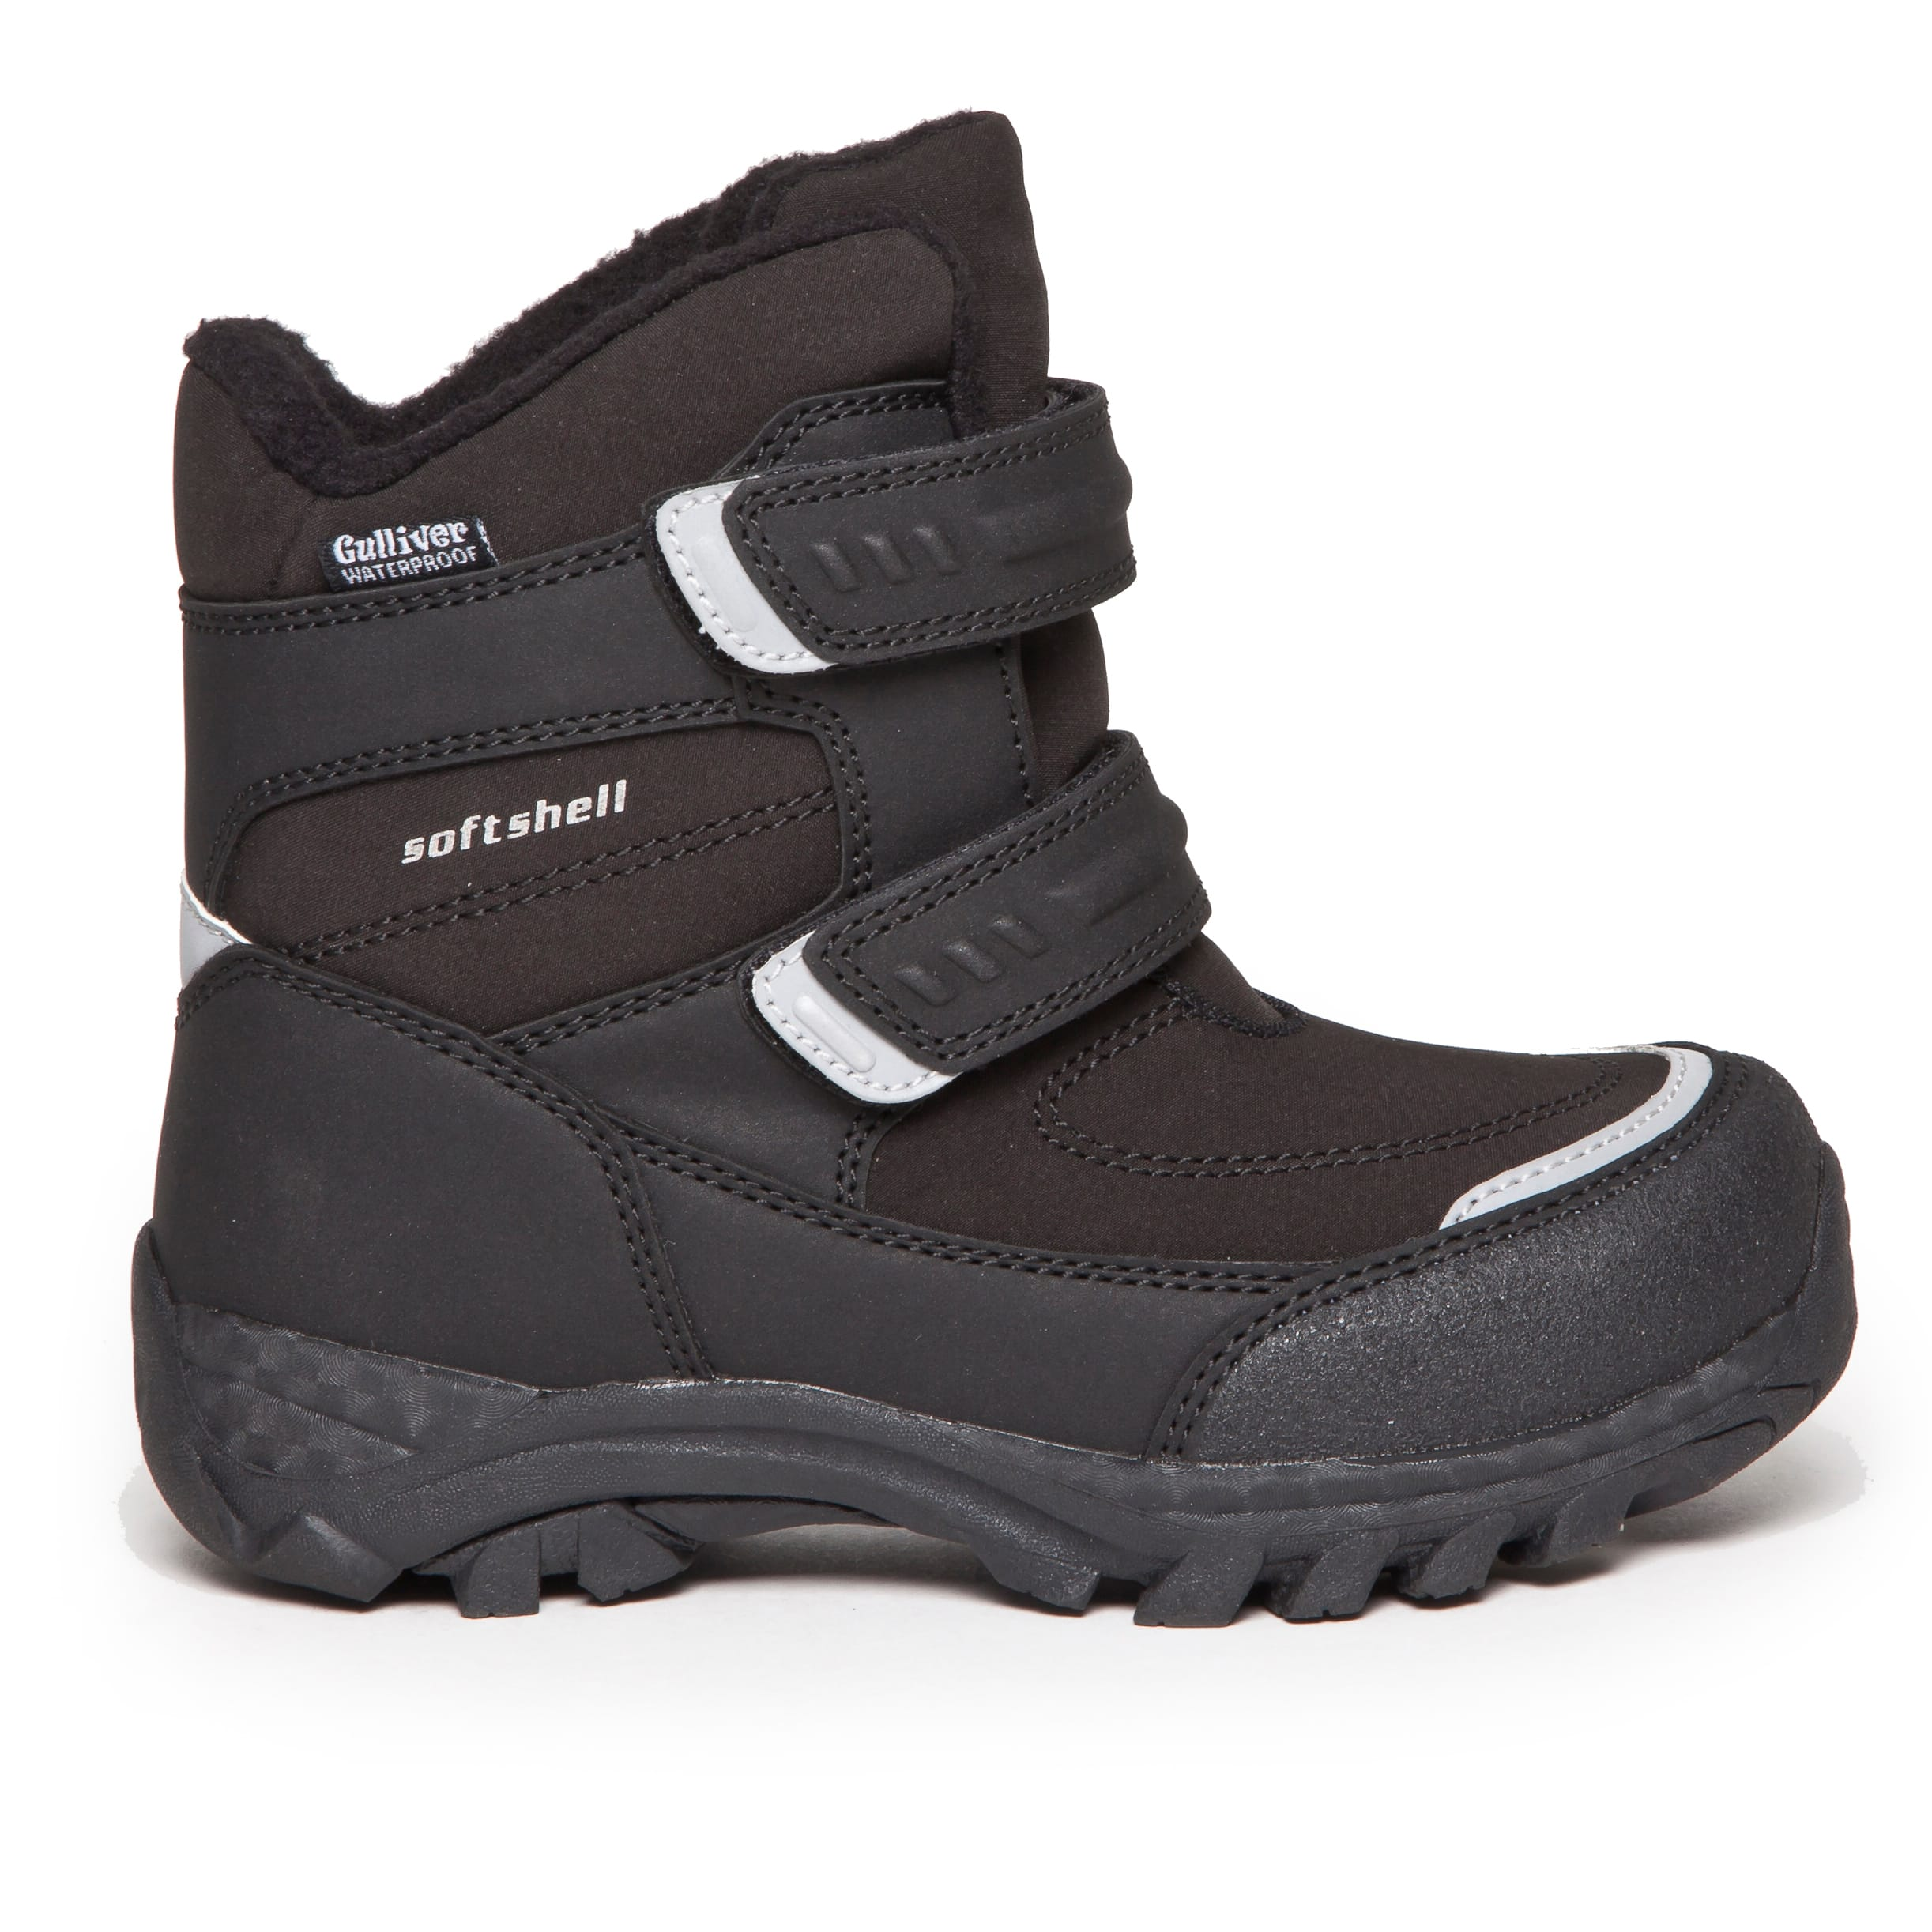 Kids Winter Boots Softshell